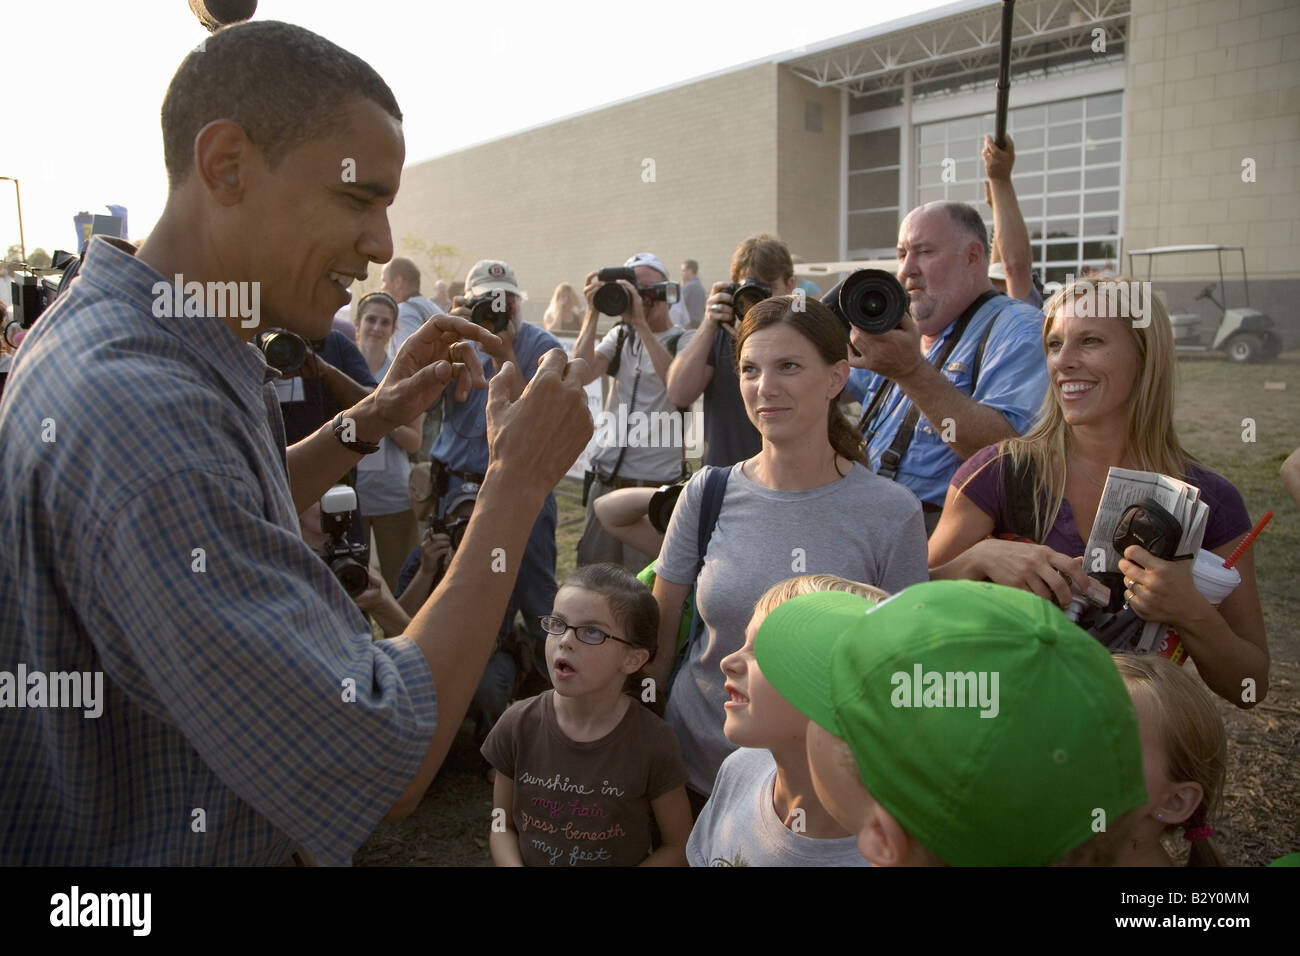 U.S. Senator Barak Obama campaigning for President at Iowa State Fair in Des Moines Iowa - Stock Image